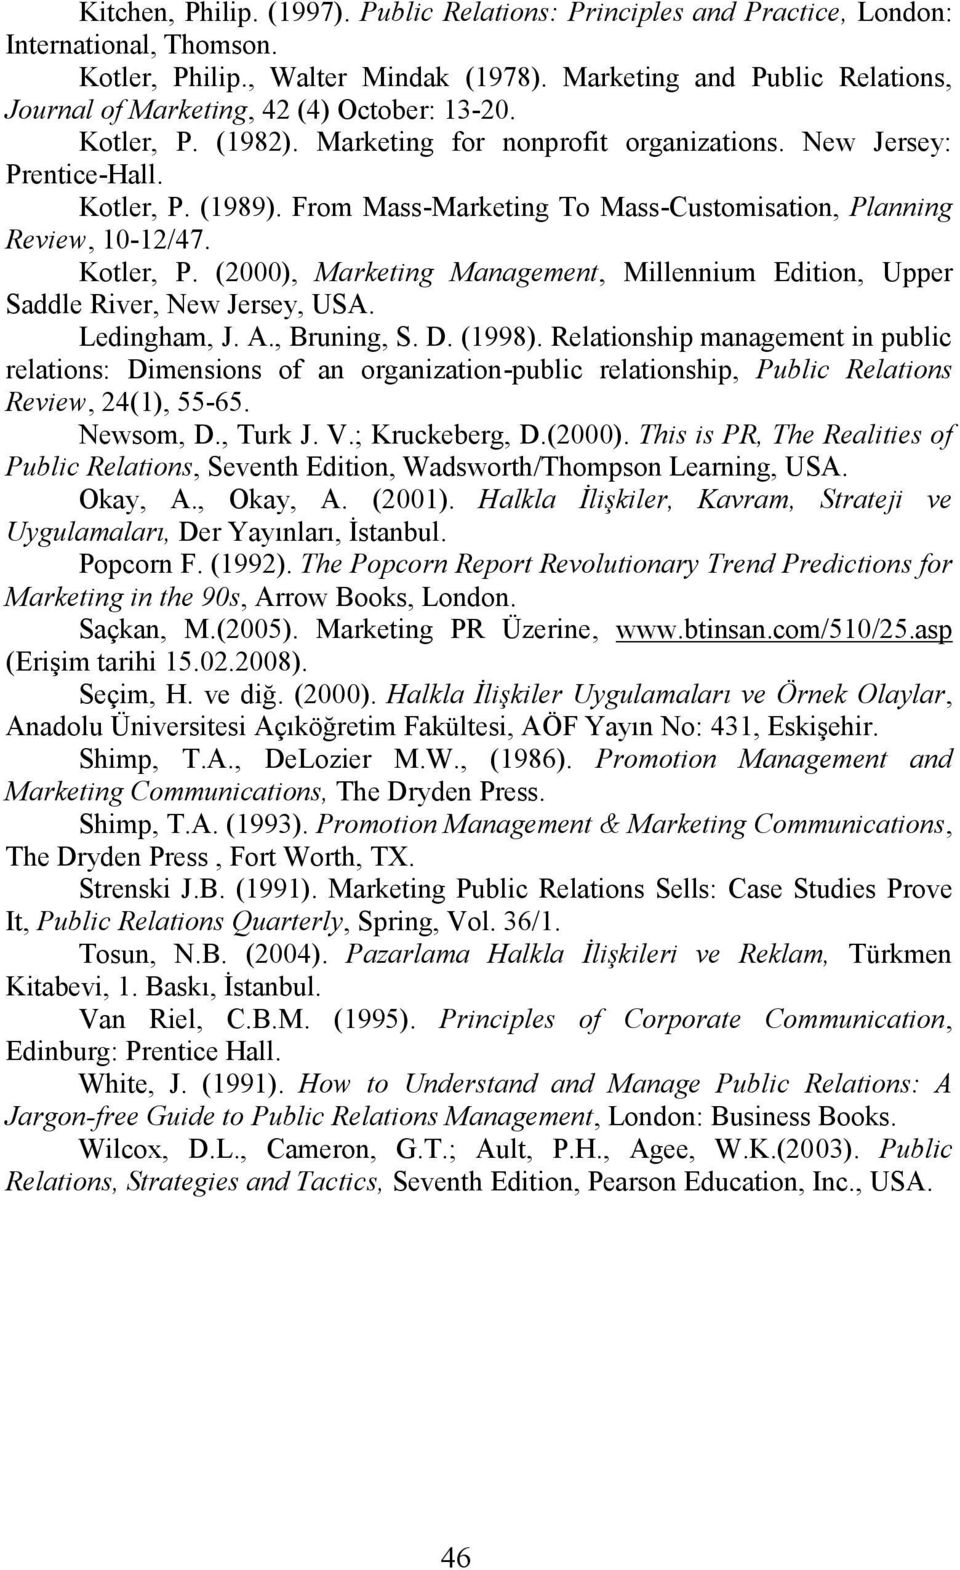 From Mass-Marketing To Mass-Customisation, Planning Review, 10-12/47. Kotler, P. (2000), Marketing Management, Millennium Edition, Upper Saddle River, New Jersey, USA. Ledingham, J. A., Bruning, S. D.